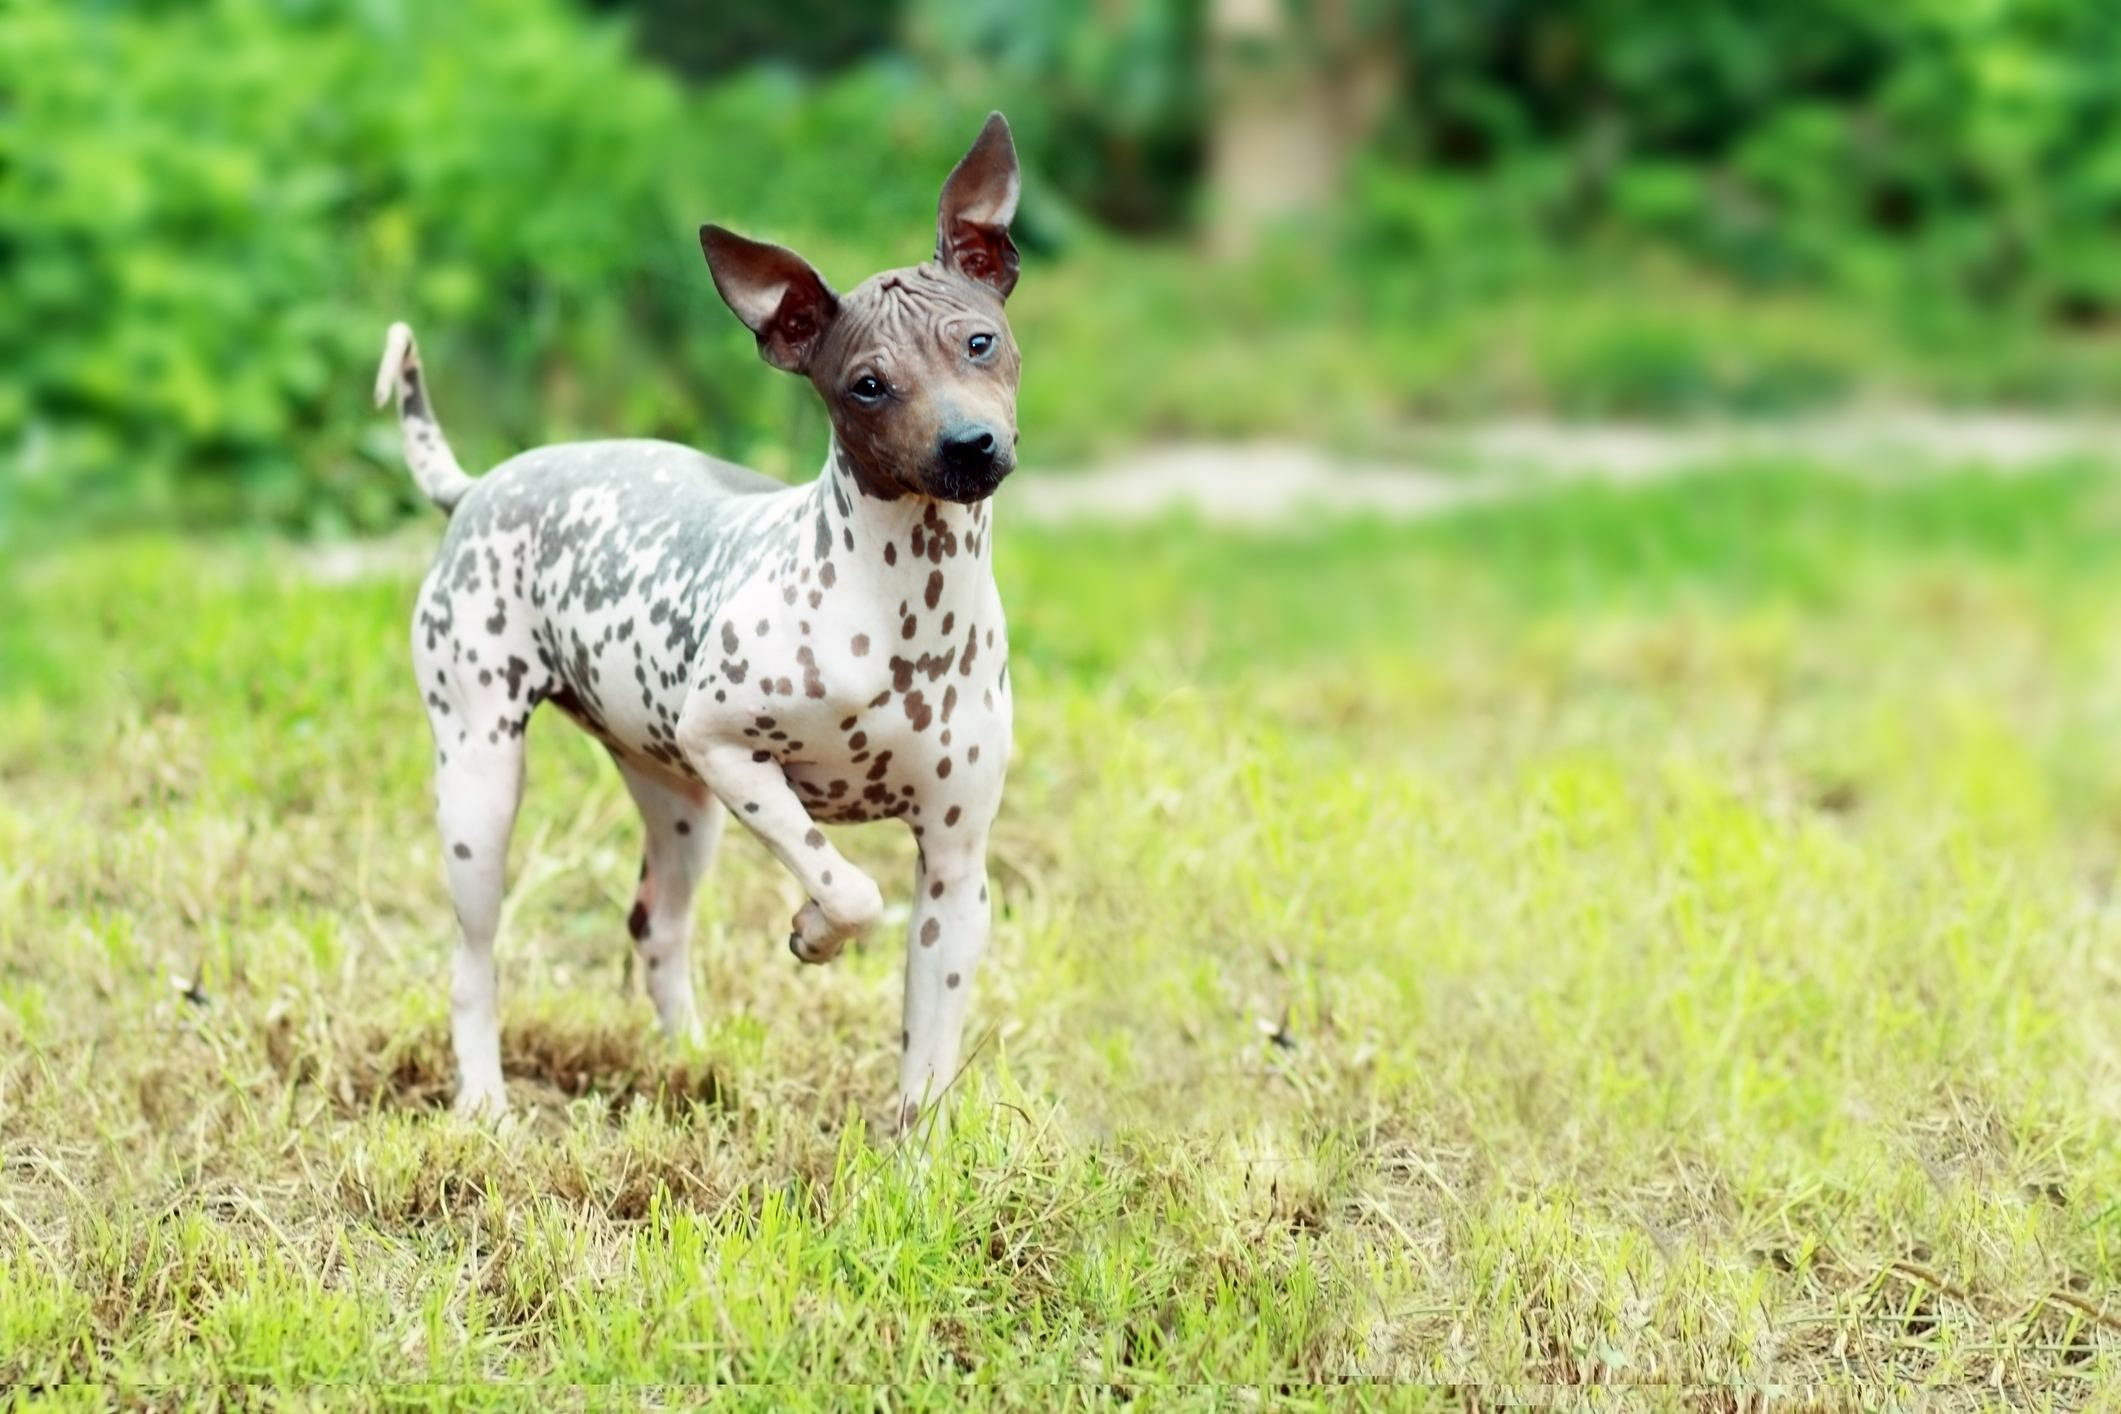 American Hairless Terrier on grass